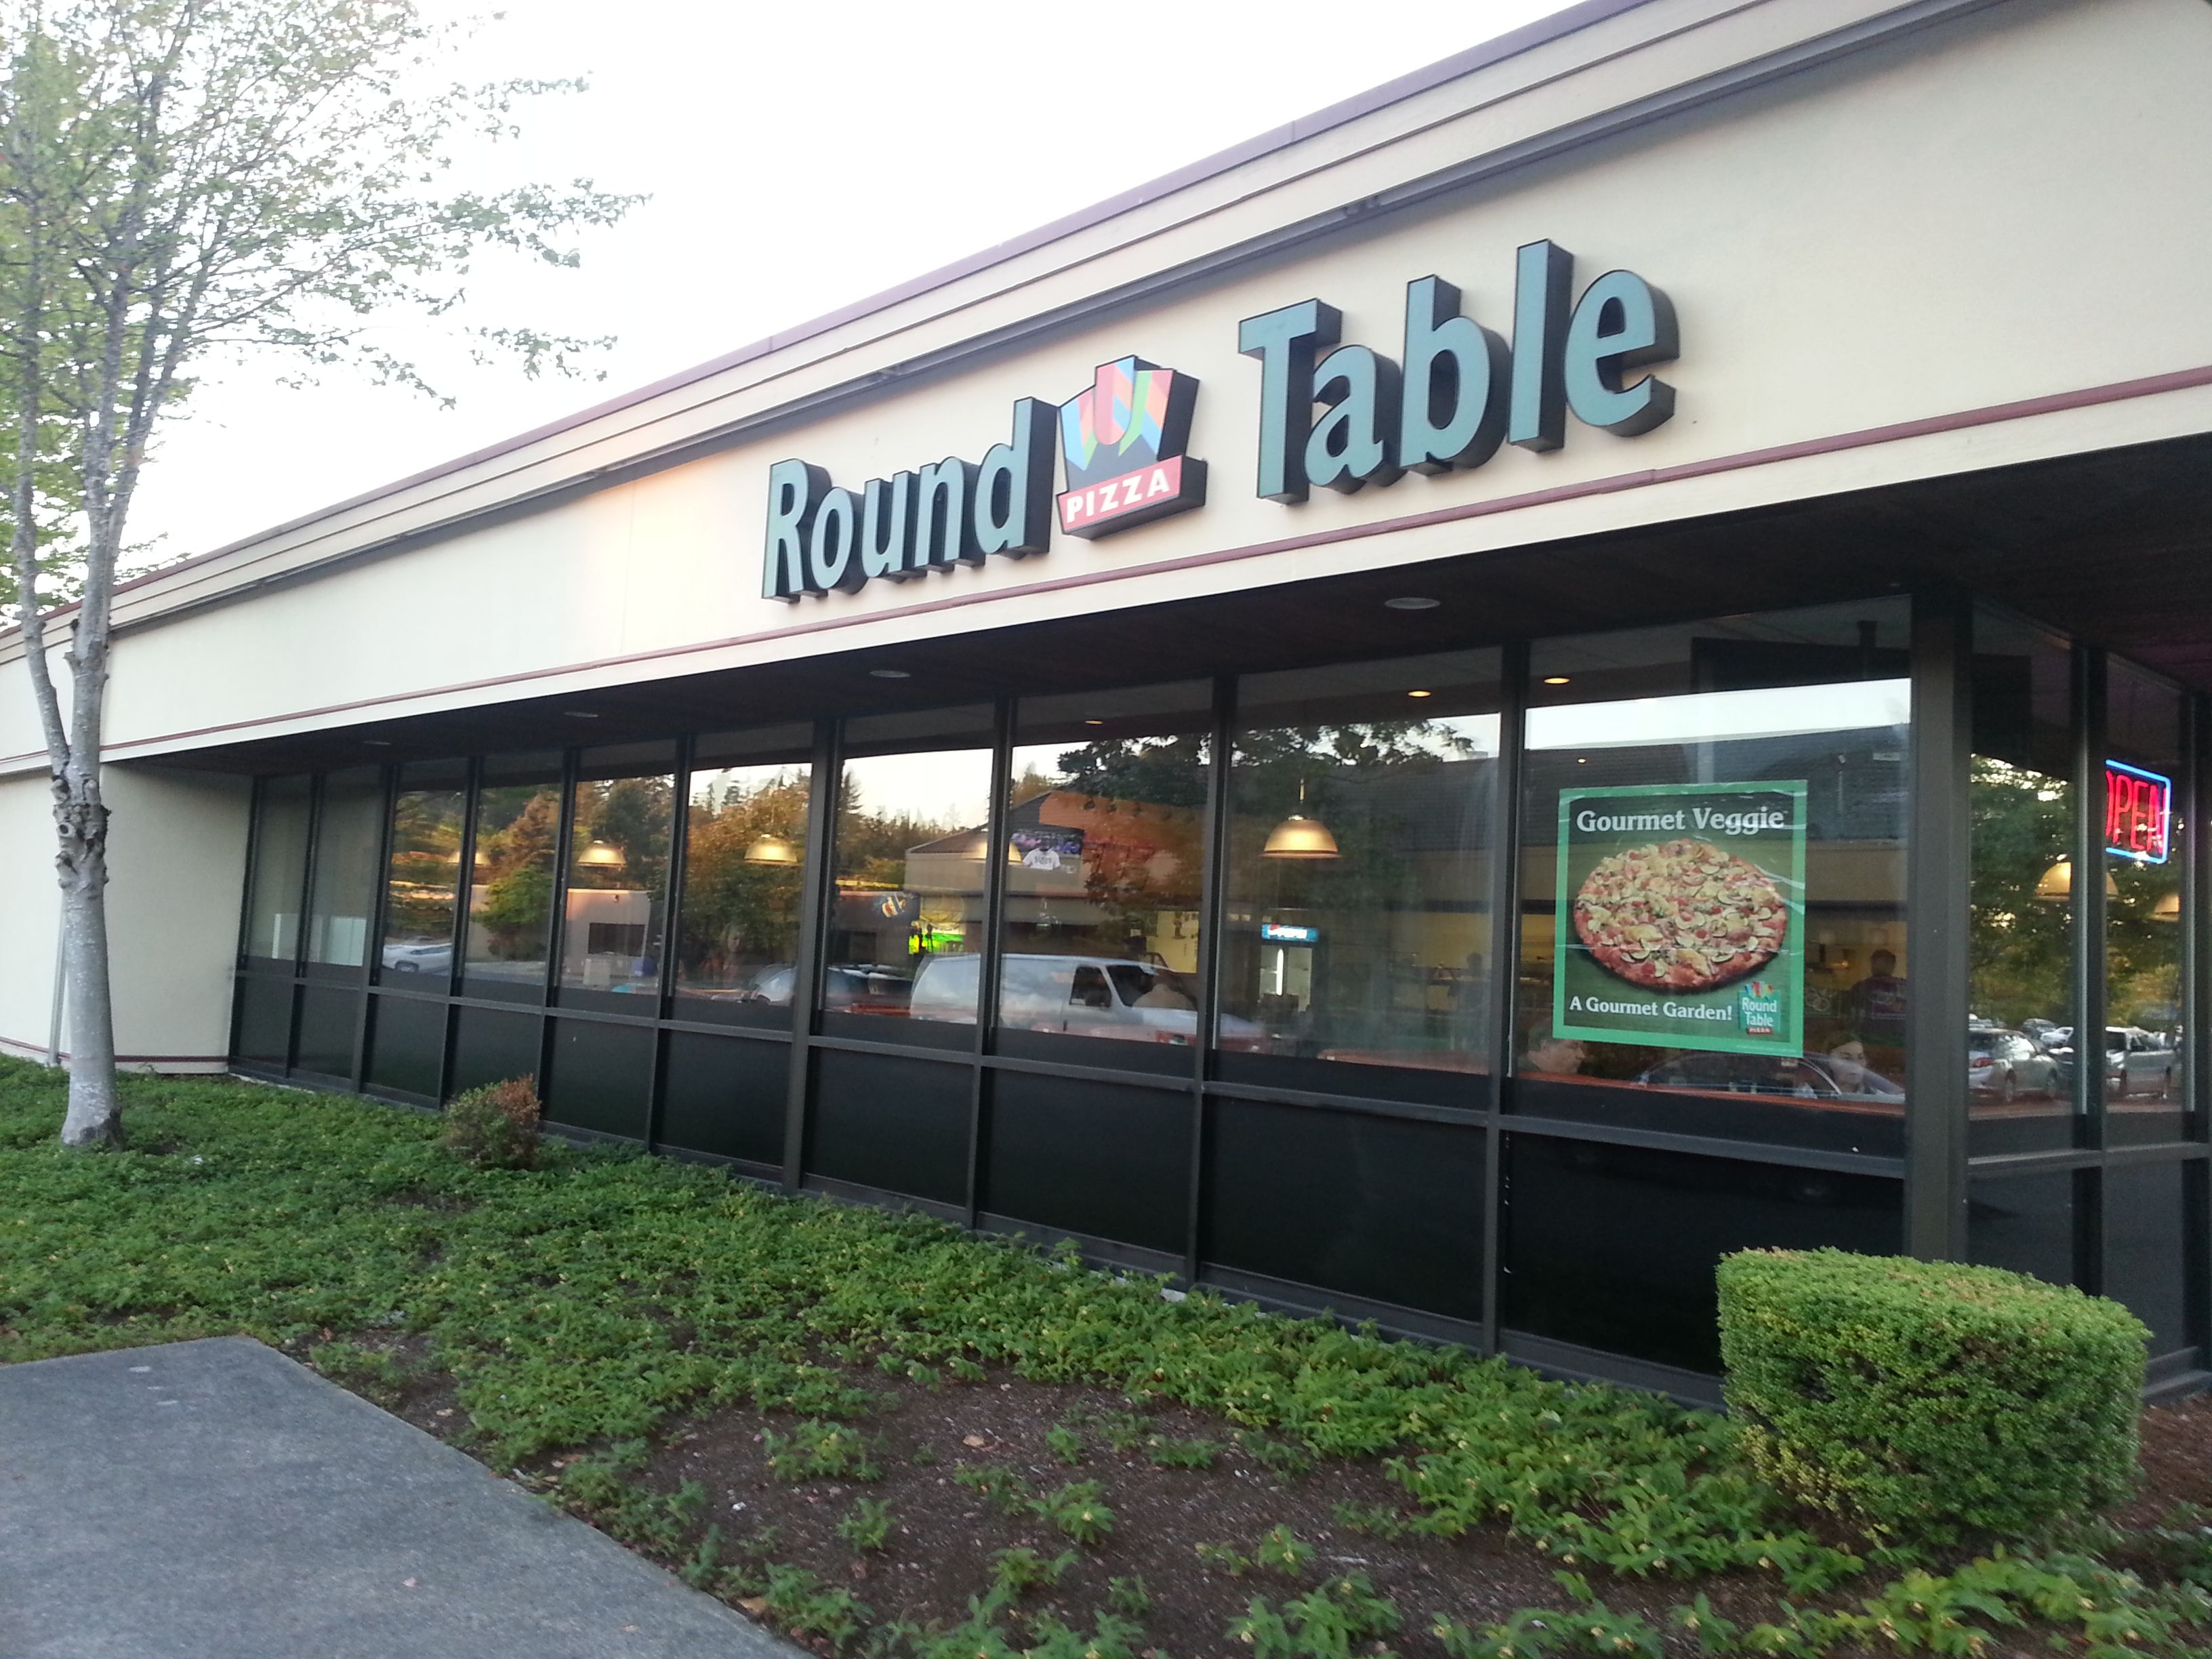 Round Table Pizza Locations.Round Table Pizza Redmond Wa Location Spray Paint Wood Best